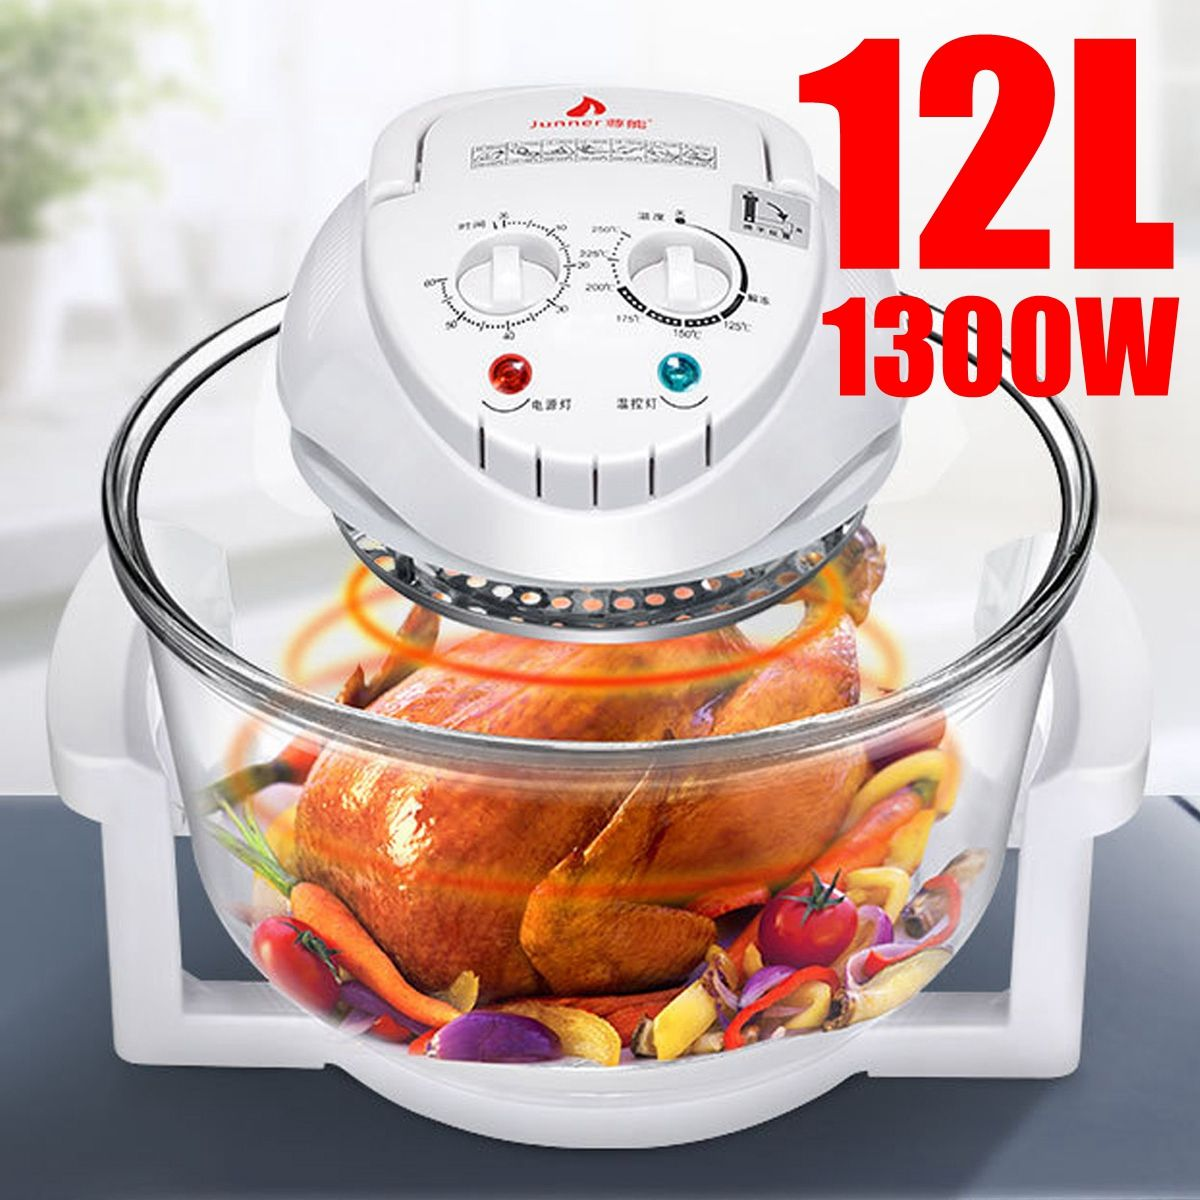 1300W Conventional Infrared Oven Roaster Air Fryer Turbo